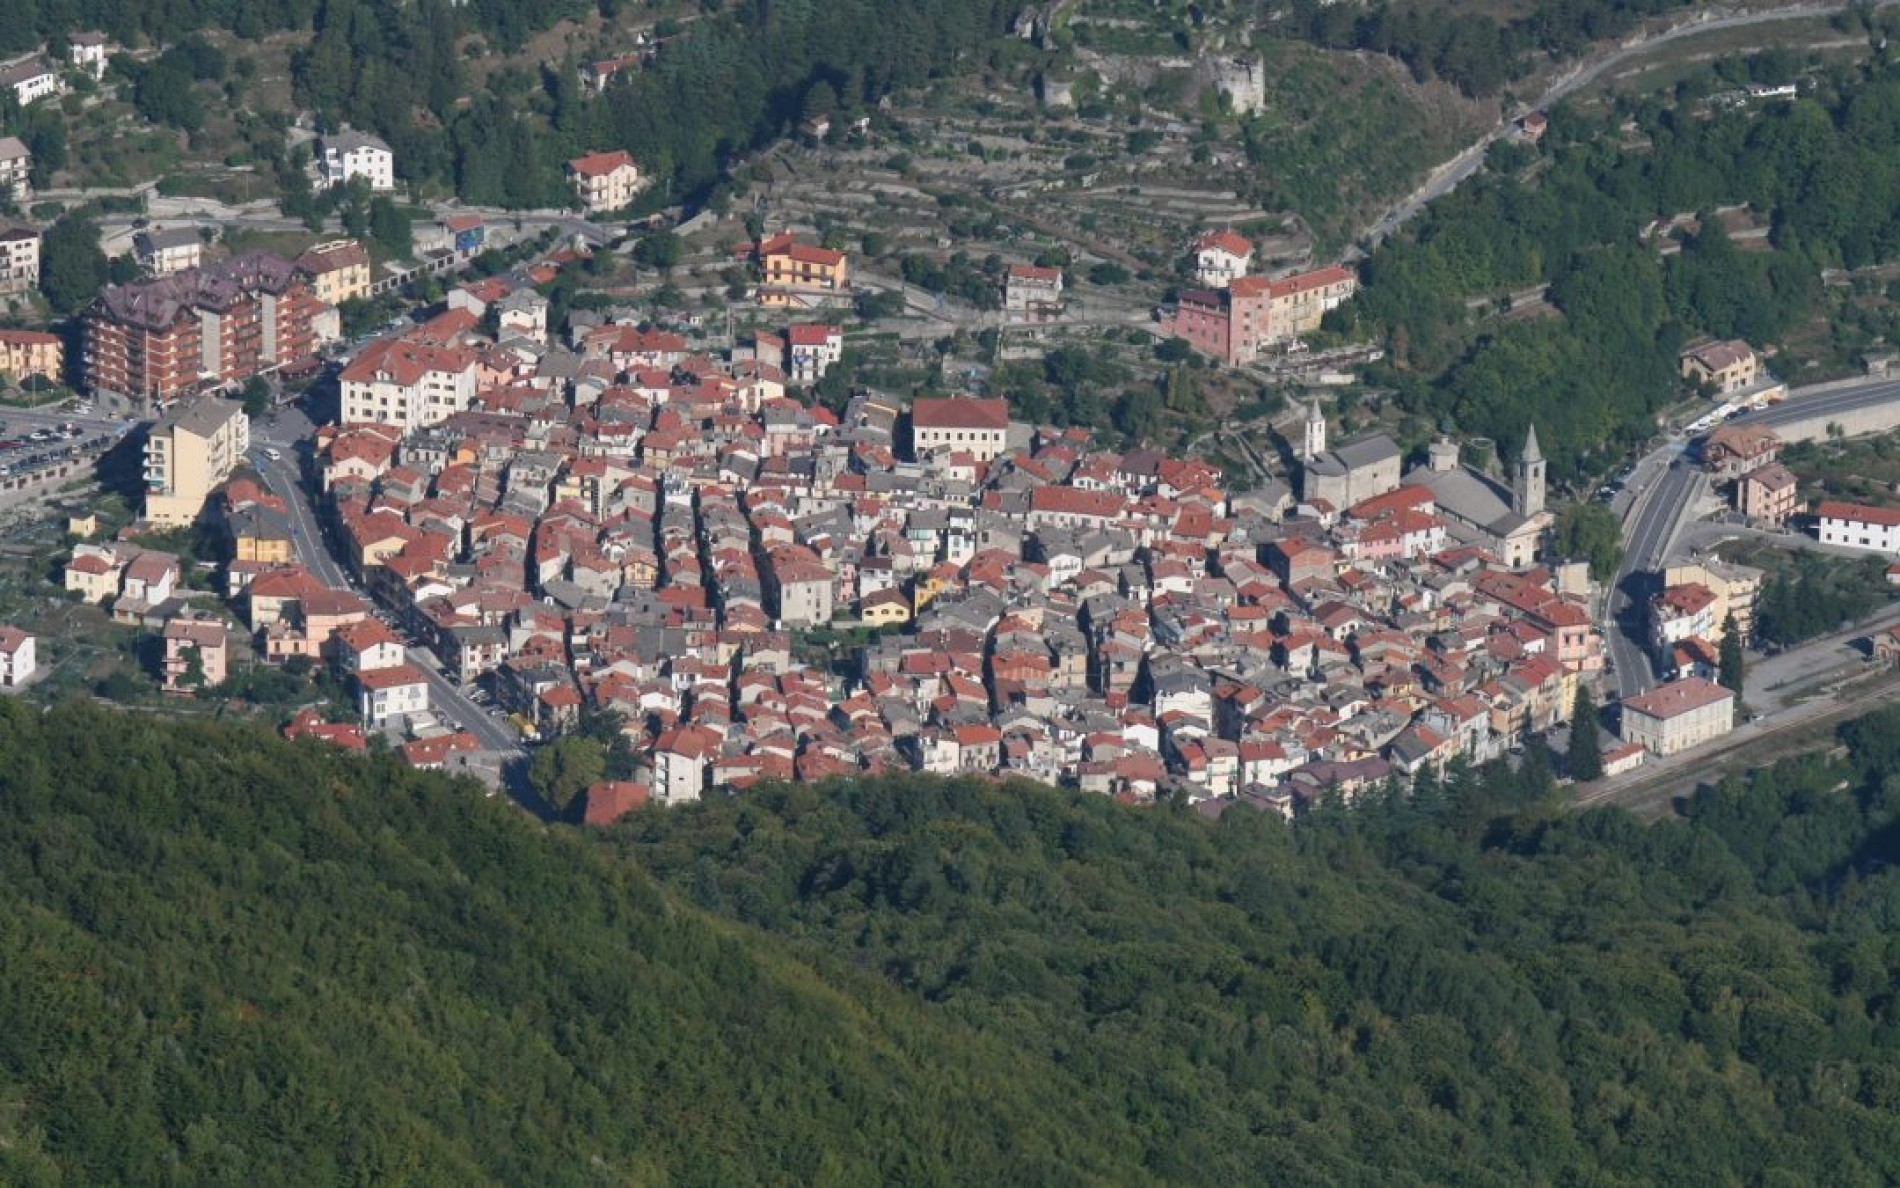 LIGURIA, A MOSAIC OF INTERESTING VILLAGES